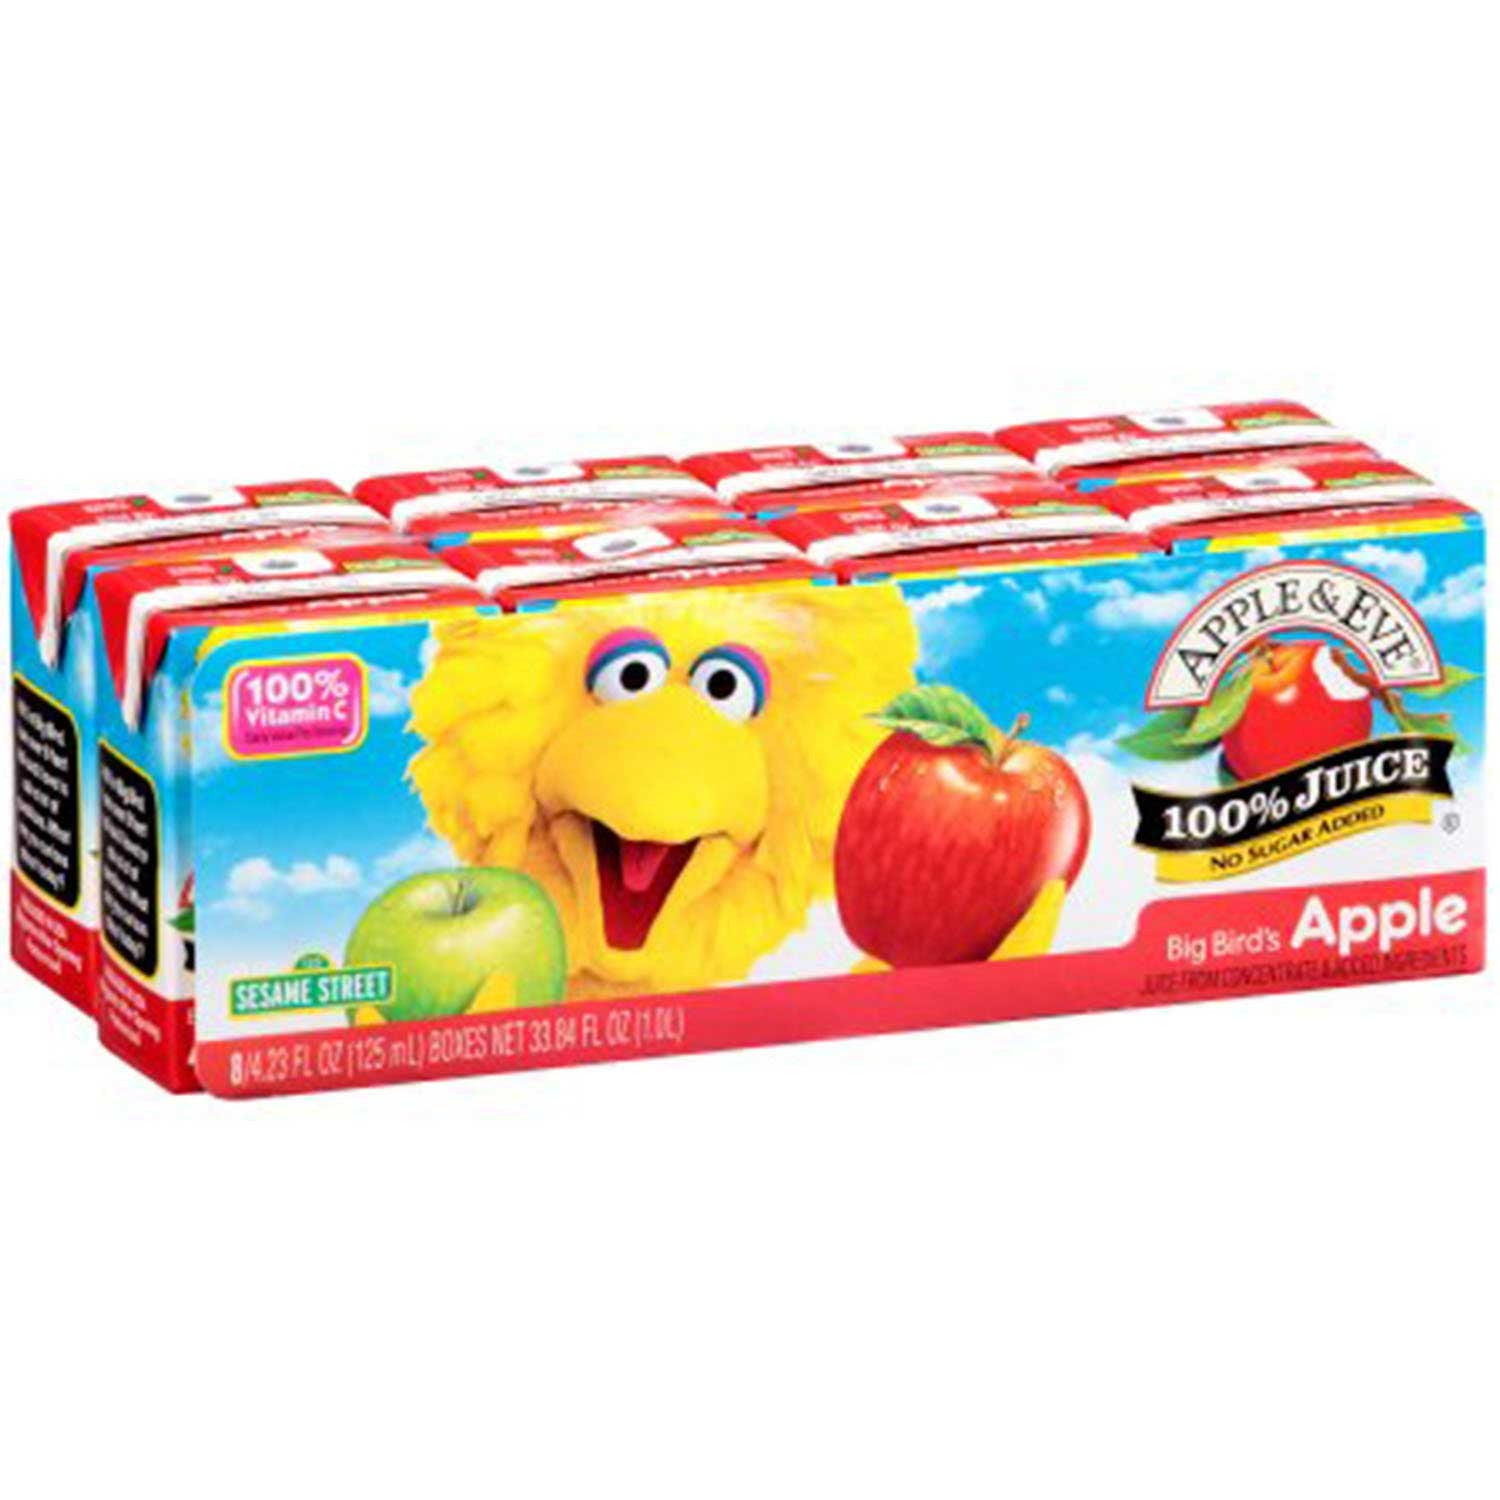 Apple & Eve Sesame Street - Big Bird's Apple, 8 x 125 ml.-NaturesWisdom